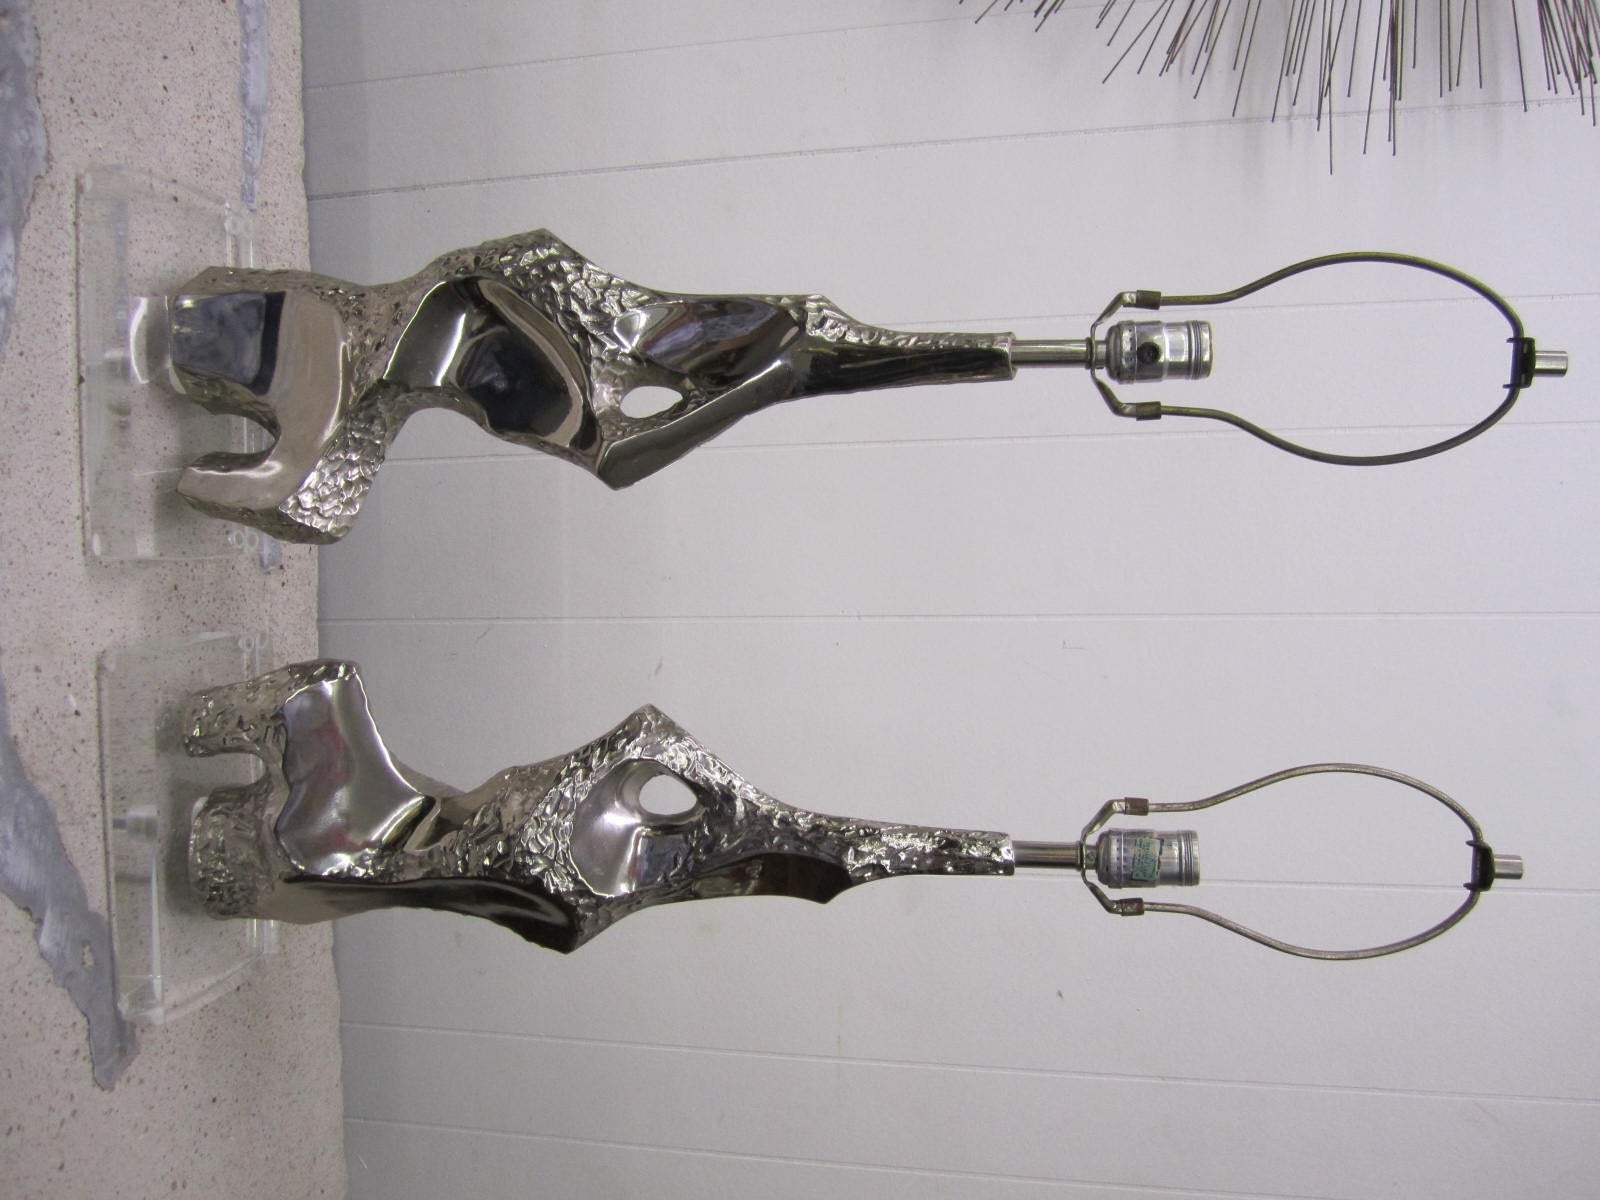 Outstanding pair of brutalist chrome and lucite torso Laurel Lamps.  The original black painted bases were replaced with these thick period lucite bases and look even better than they originally did.  I think you will agree that these lamps are even